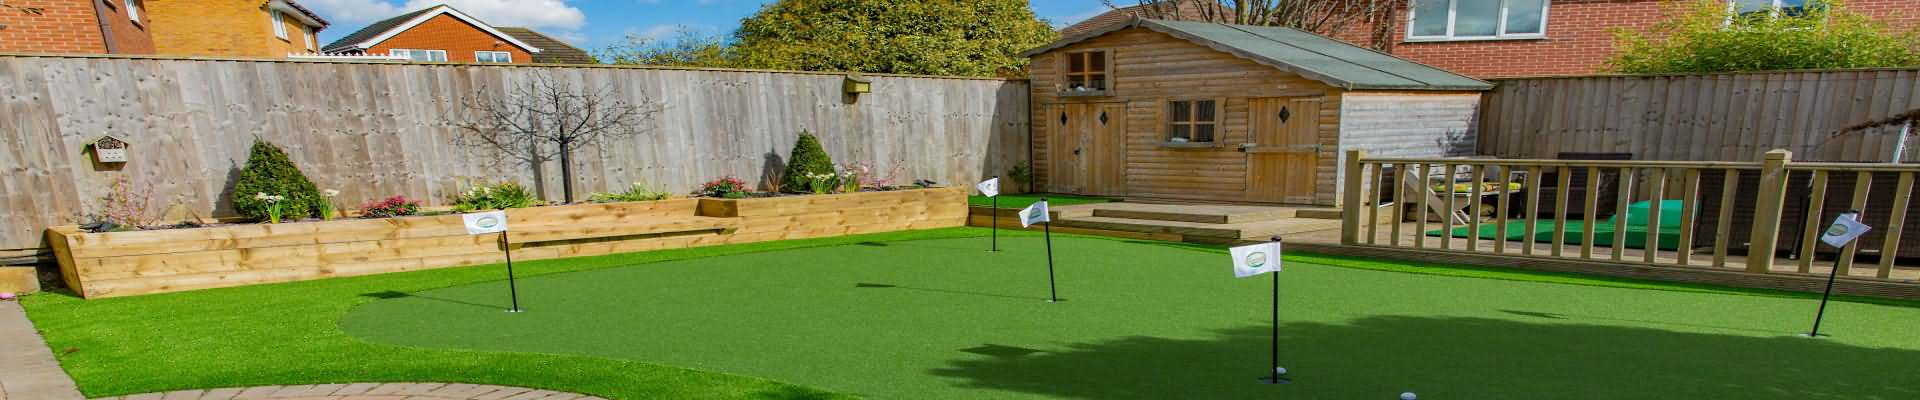 Domestic Golf and Putting